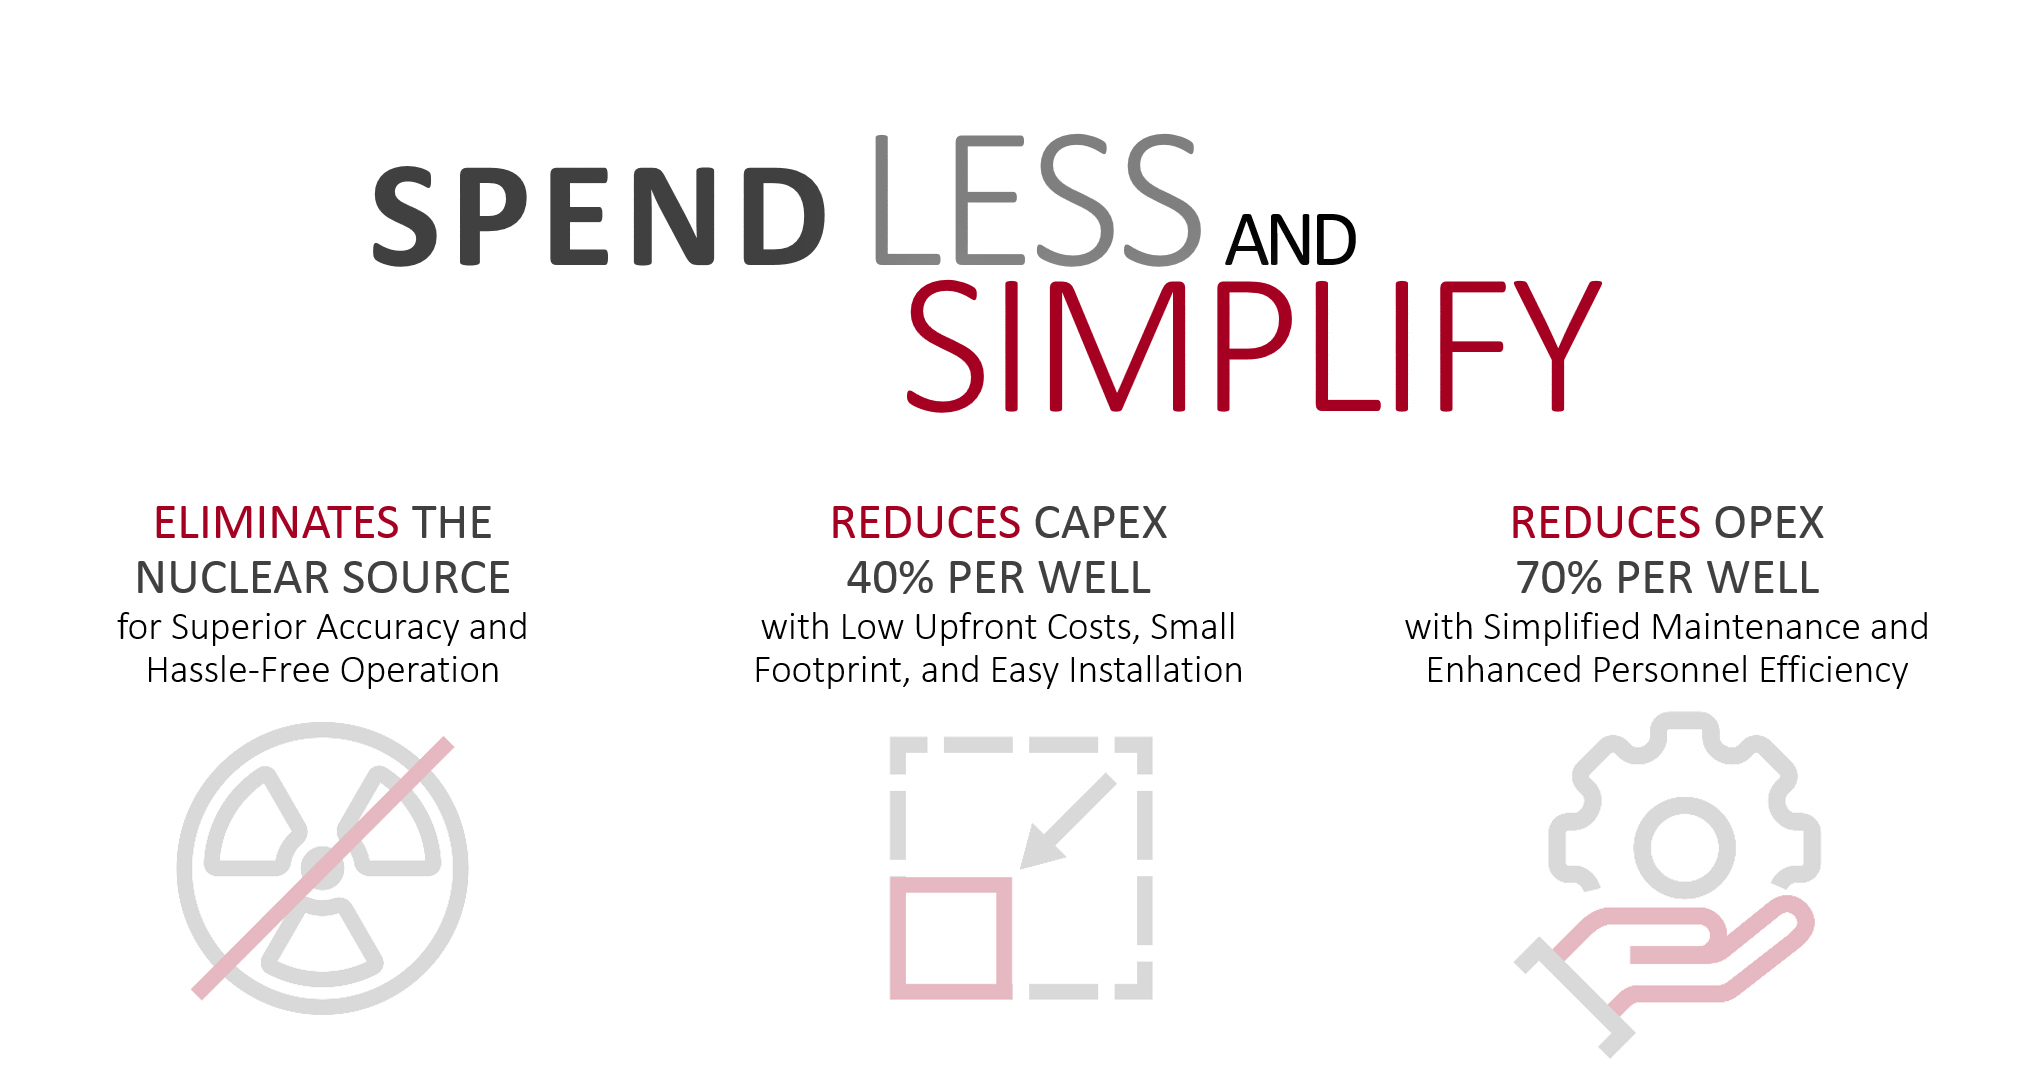 Spend less and simplify